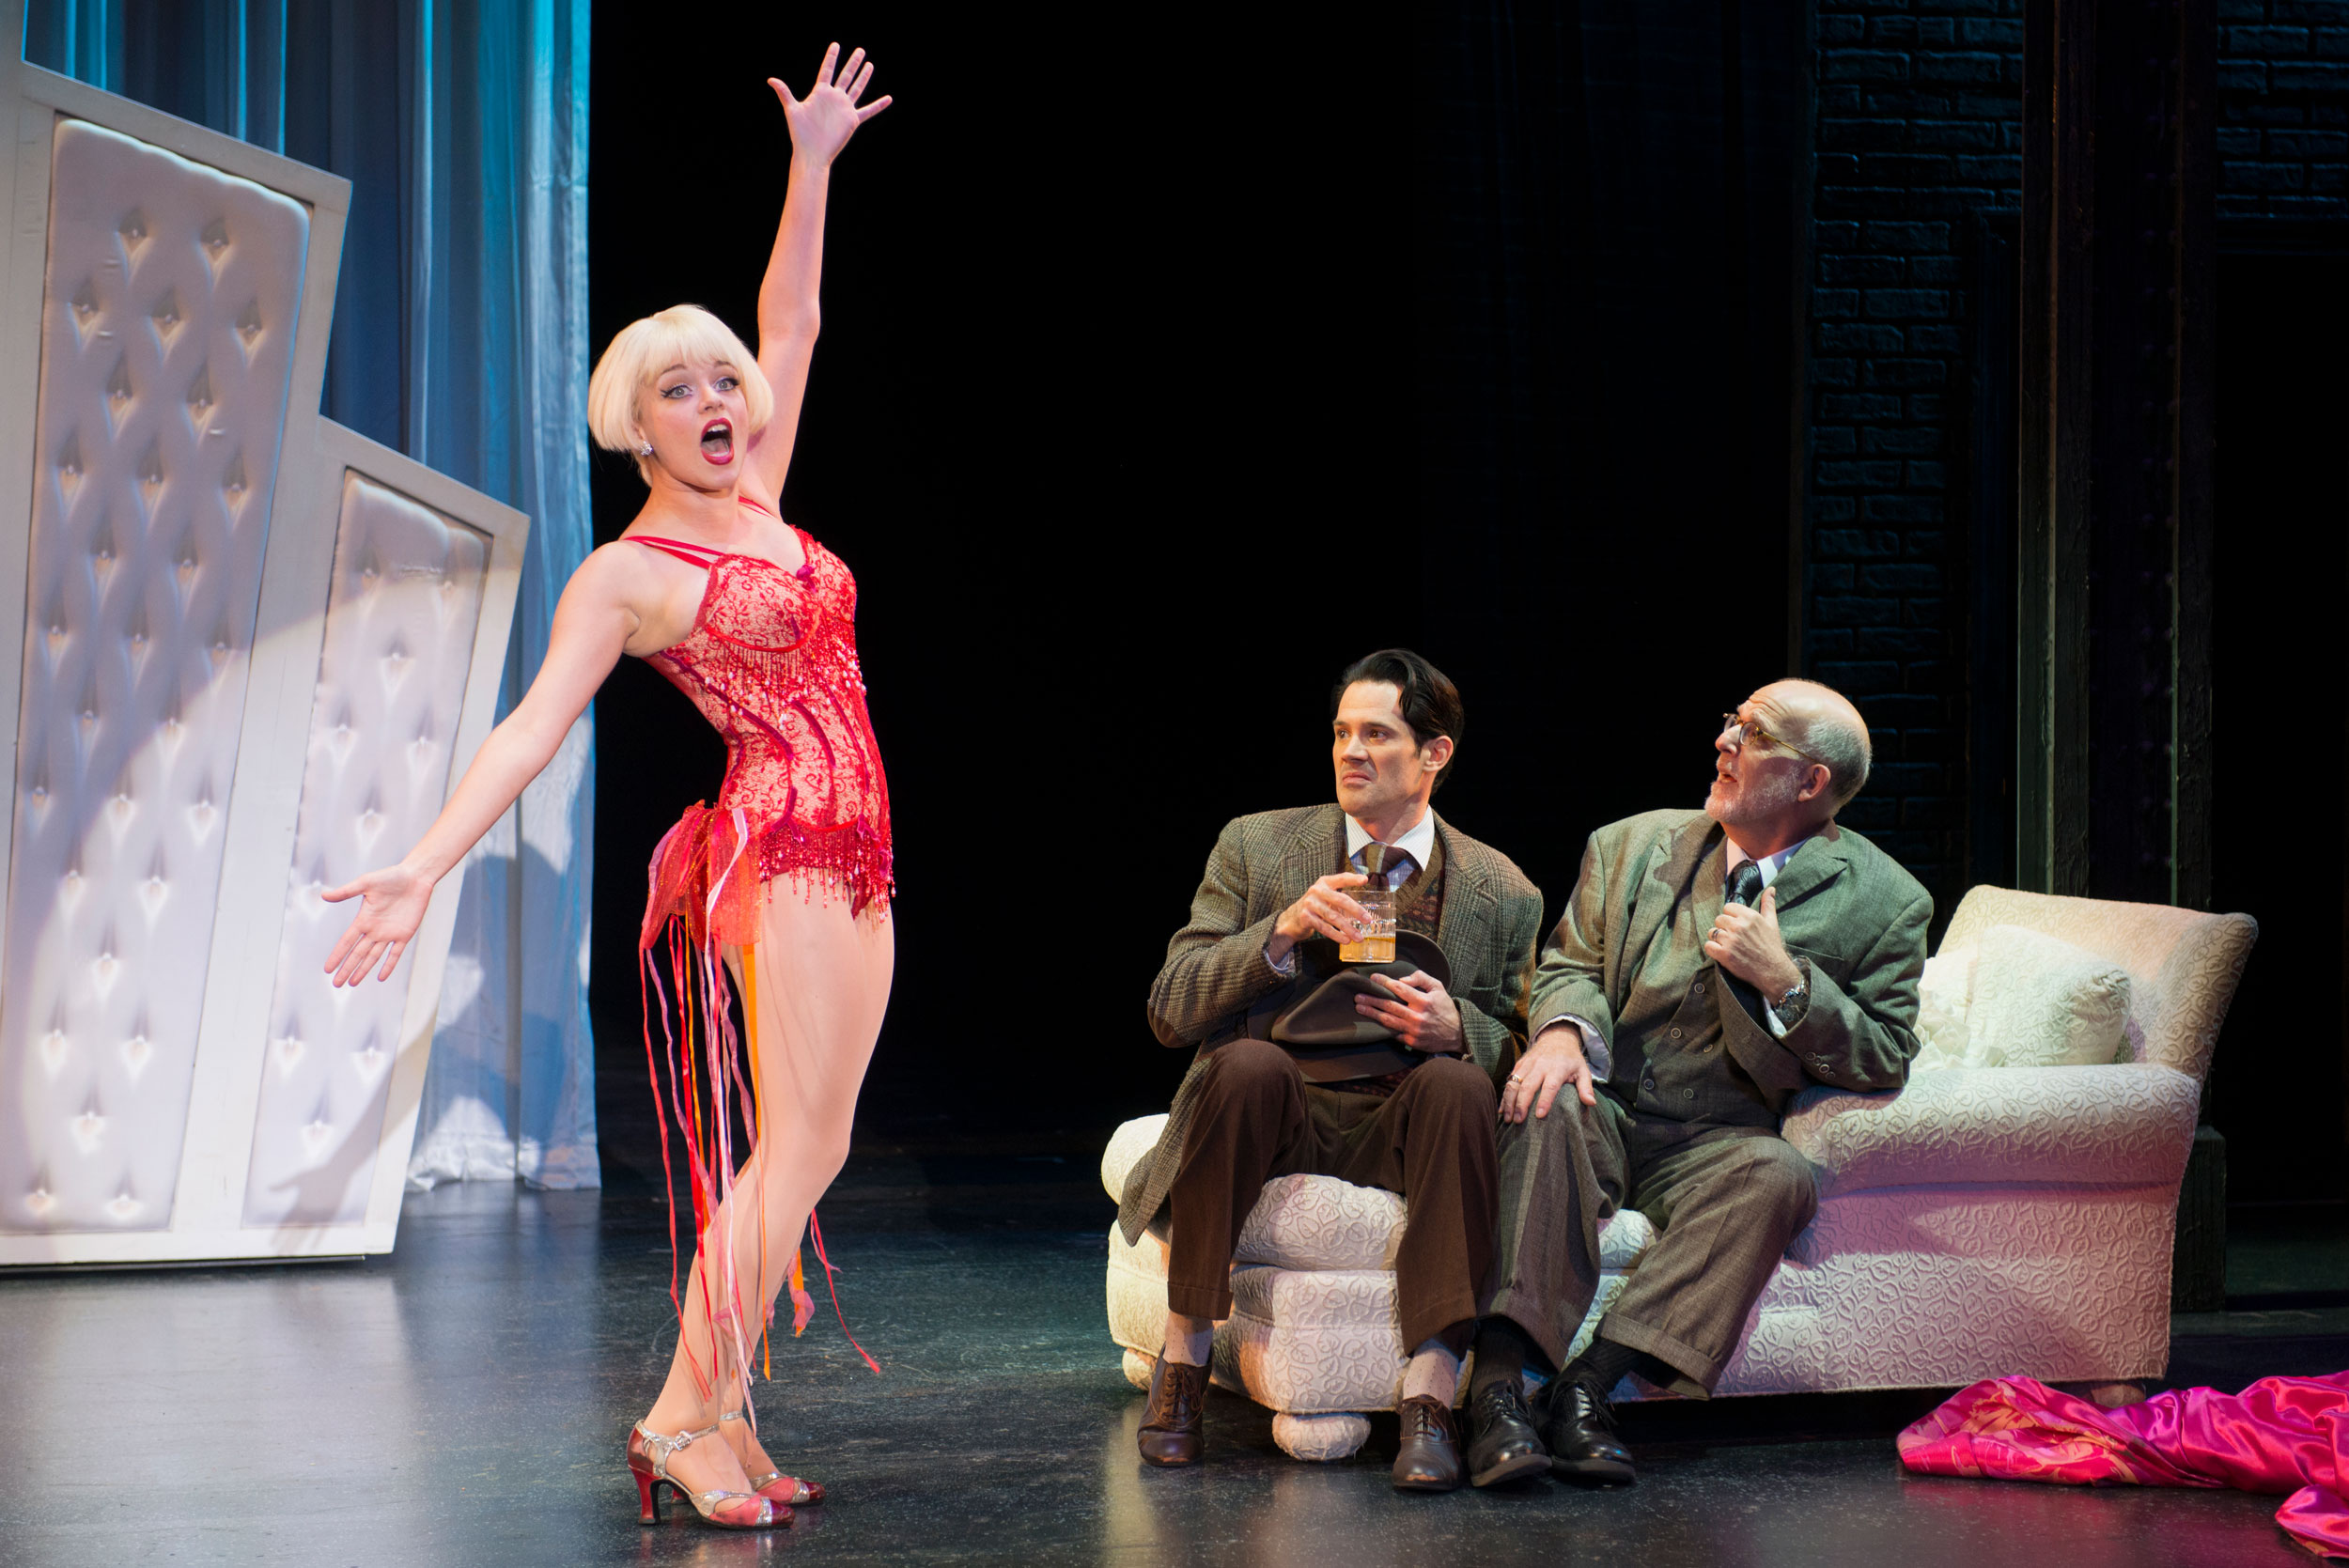 Jemma Jane, John Rochette, and Kenny Moris  in Bullets Over Broadway at the Ogunquit Playhouse, 2017 - Photo by Gary Ng